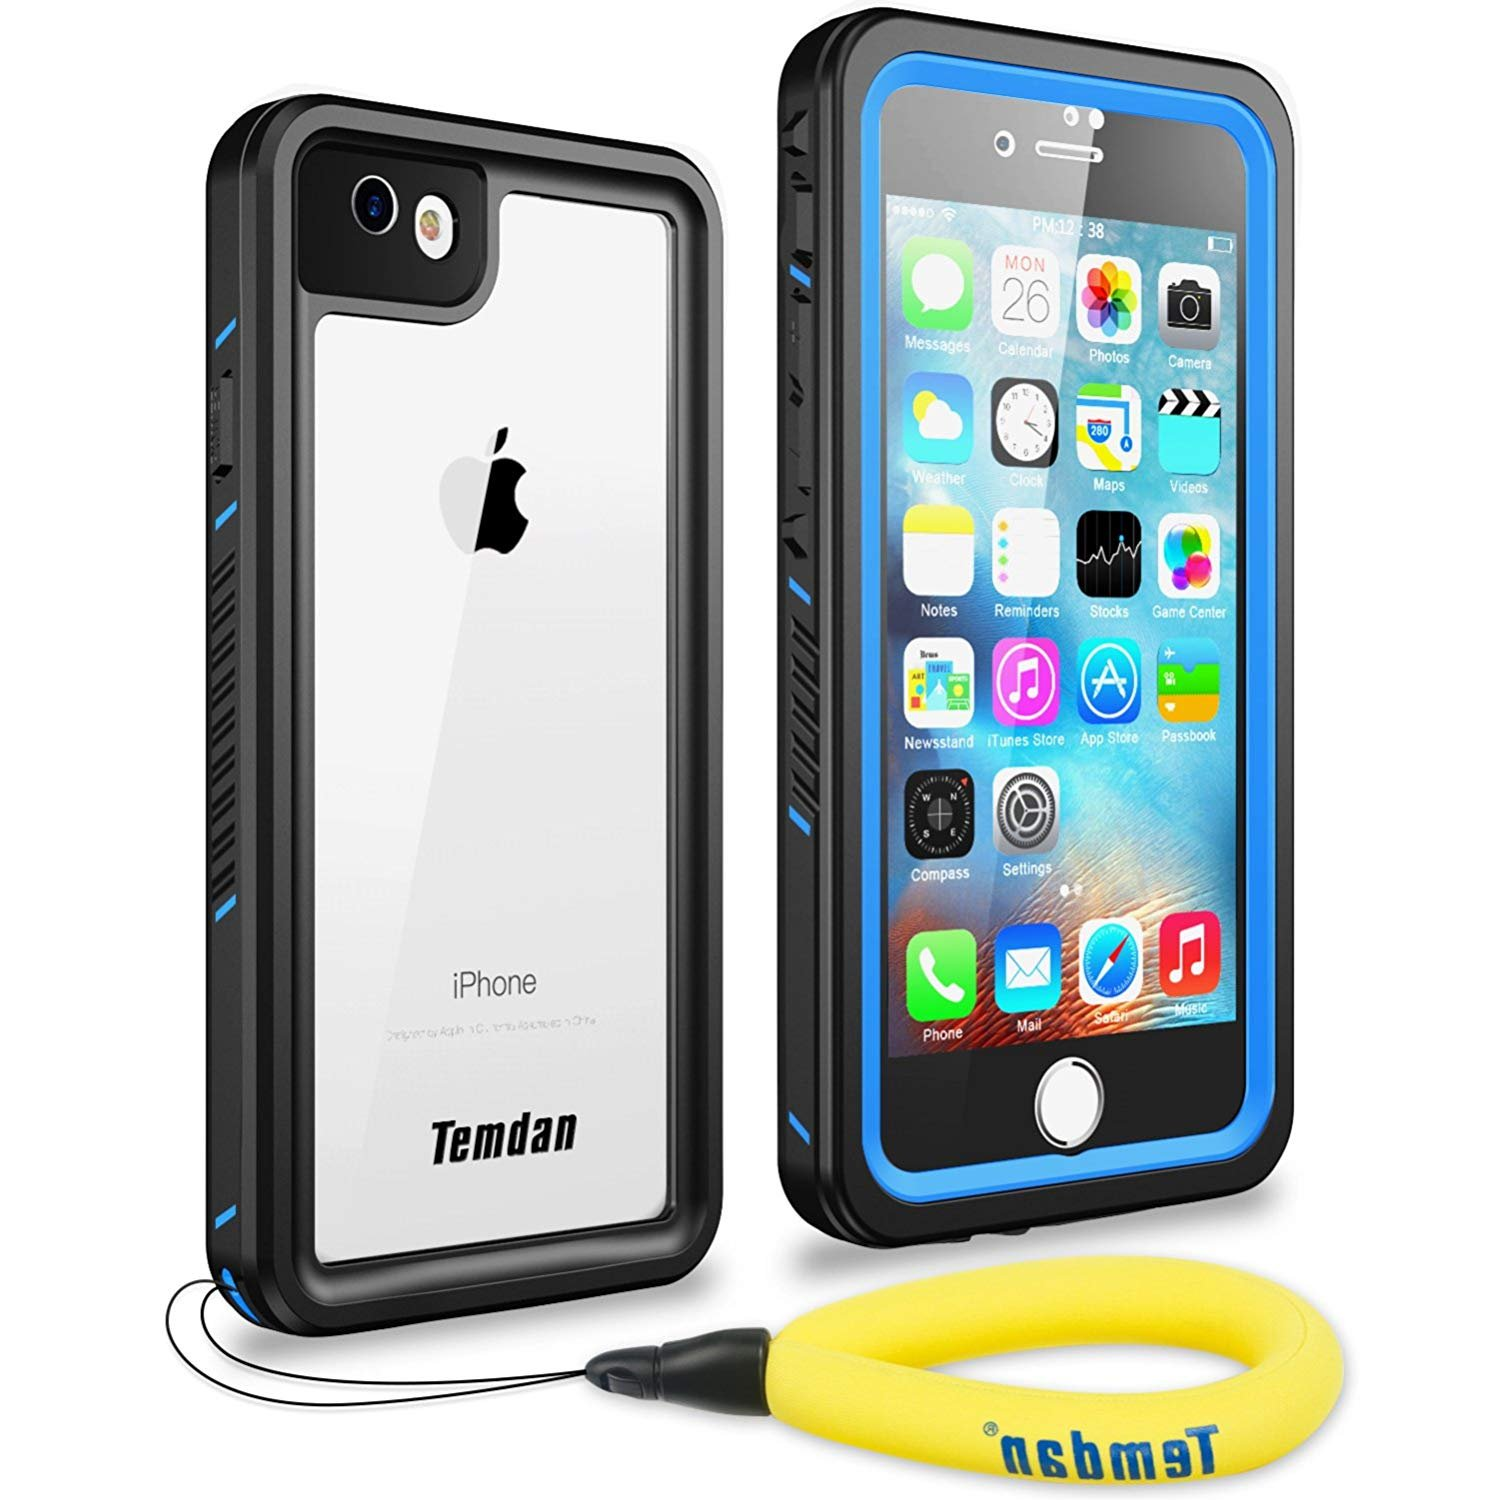 sneakers for cheap 47740 e9a9e Temdan iPhone 7/8 Waterproof Case with Floating Strap Built in Screen  Protector Transparent Cover Shockproof Snowproof IP68 Waterproof Case for  iPhone ...